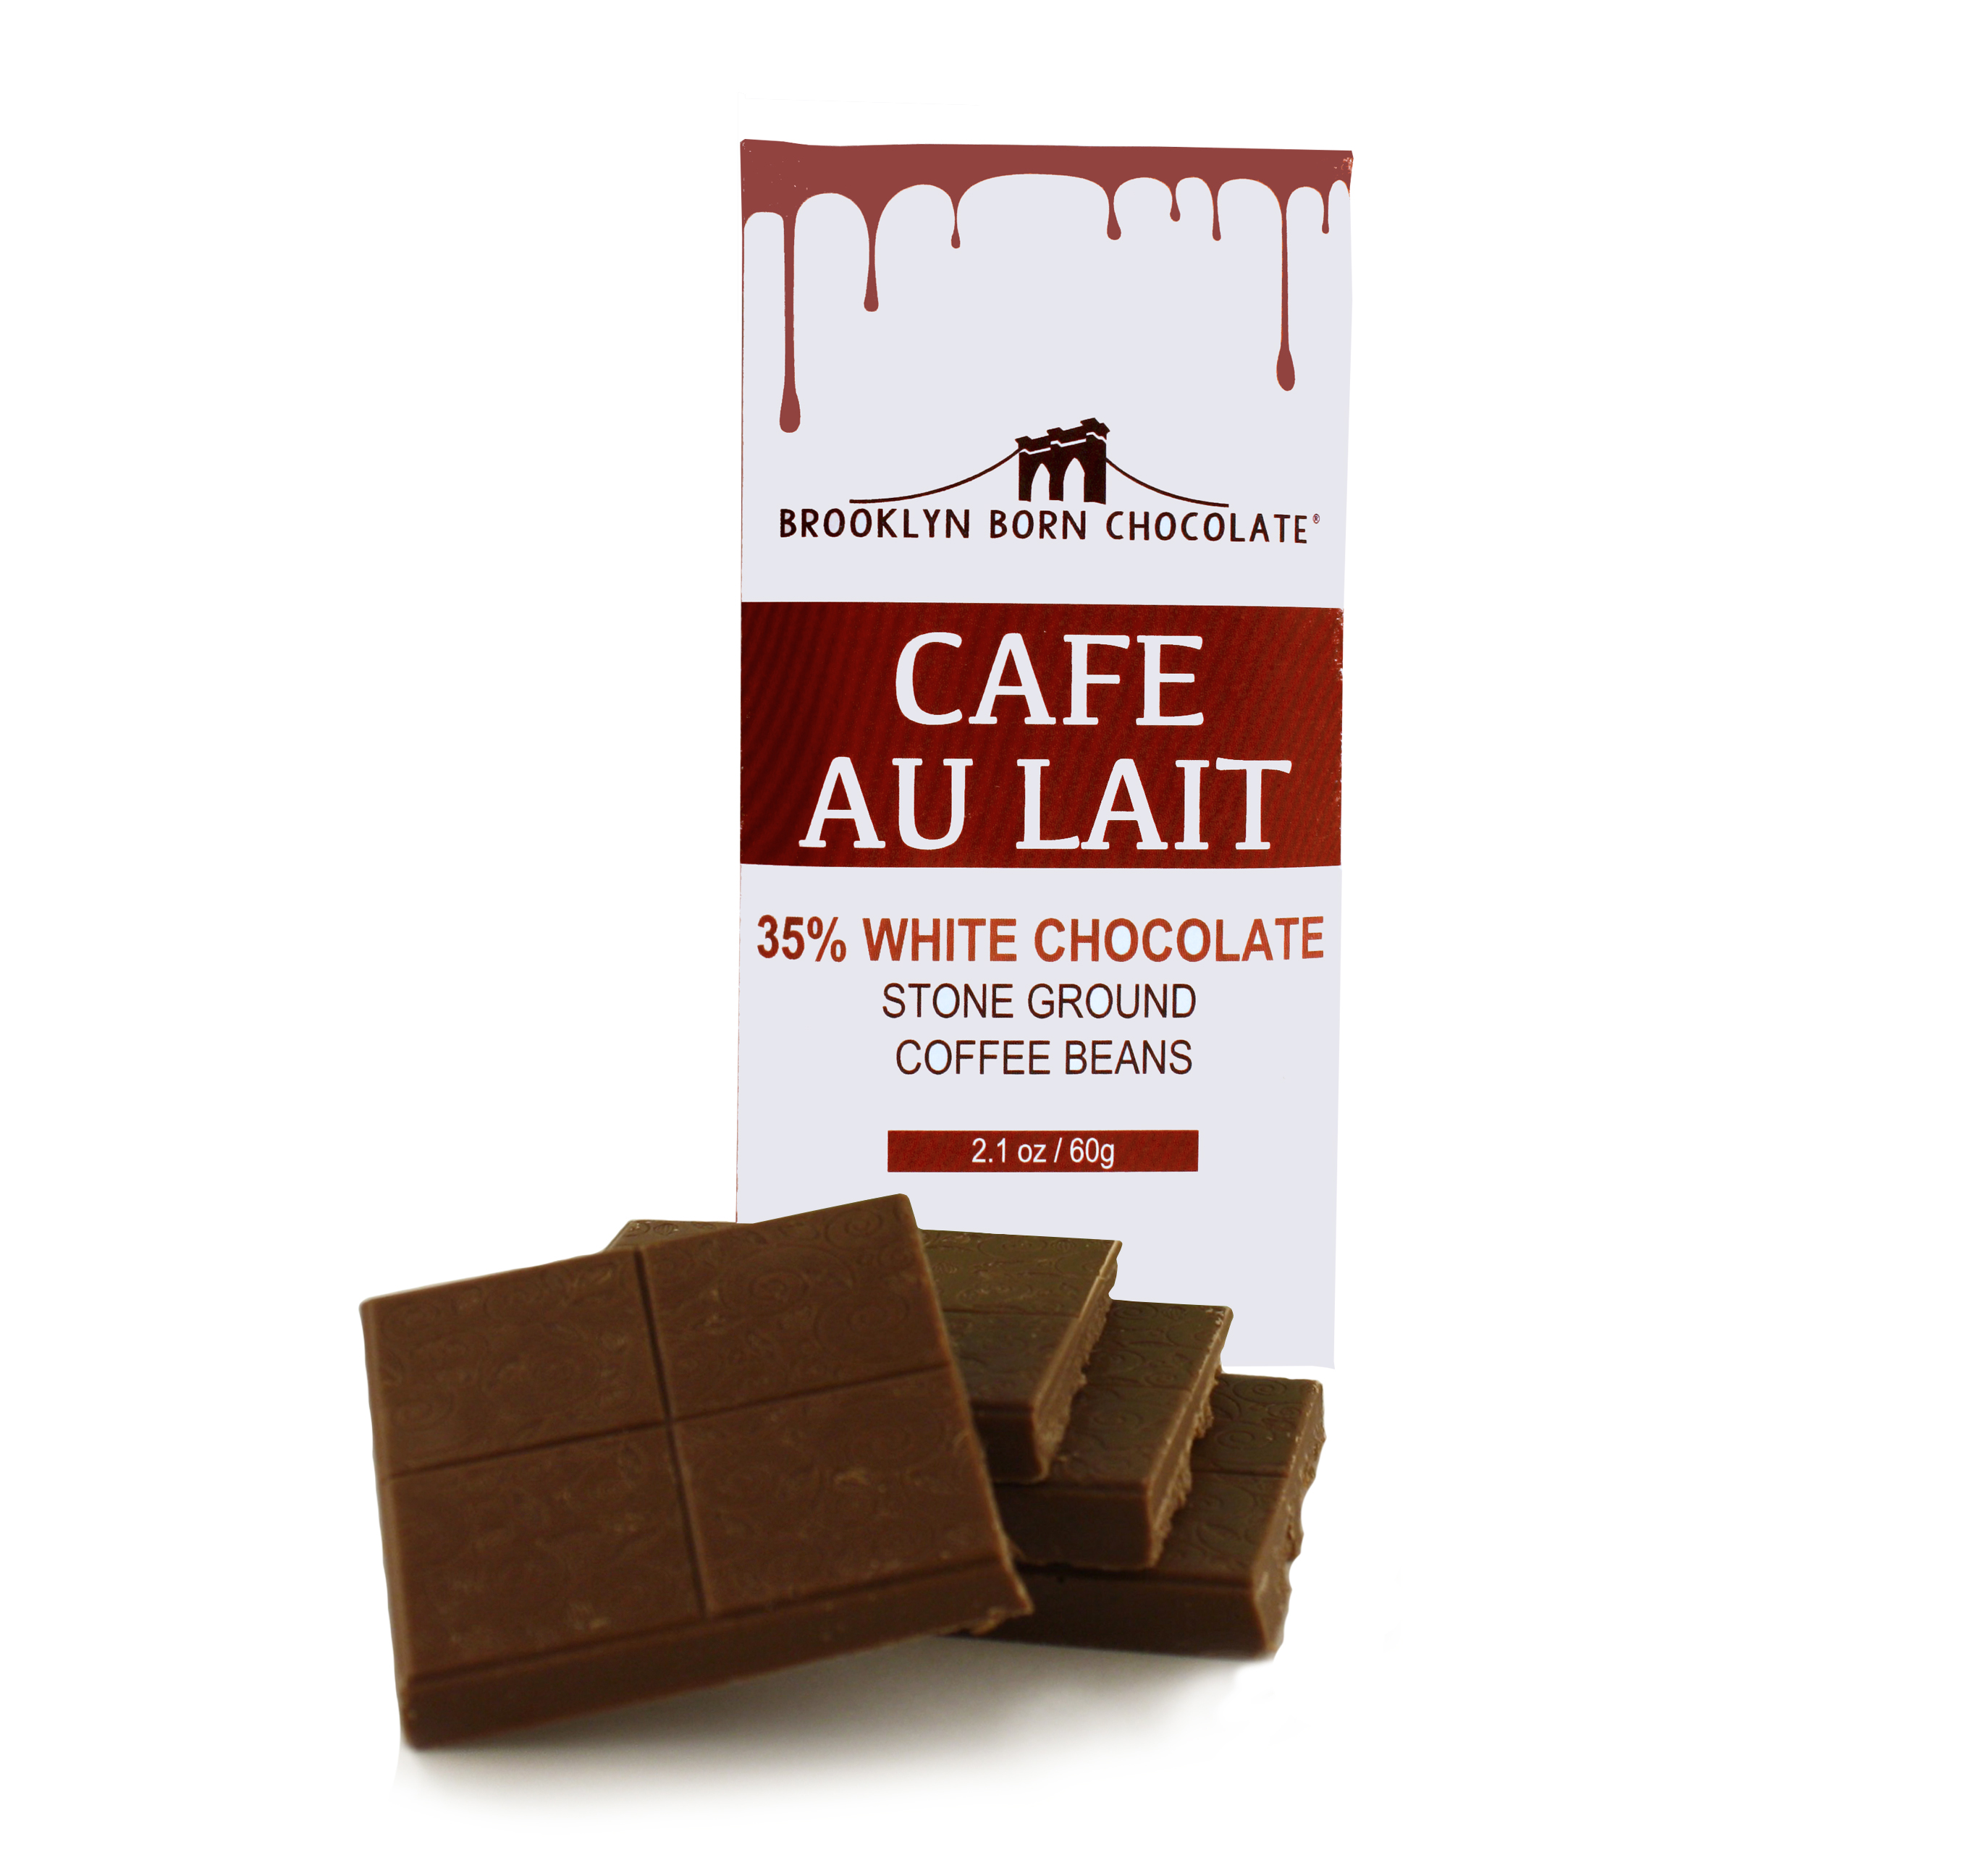 Café Au Lait Chocolate Bar